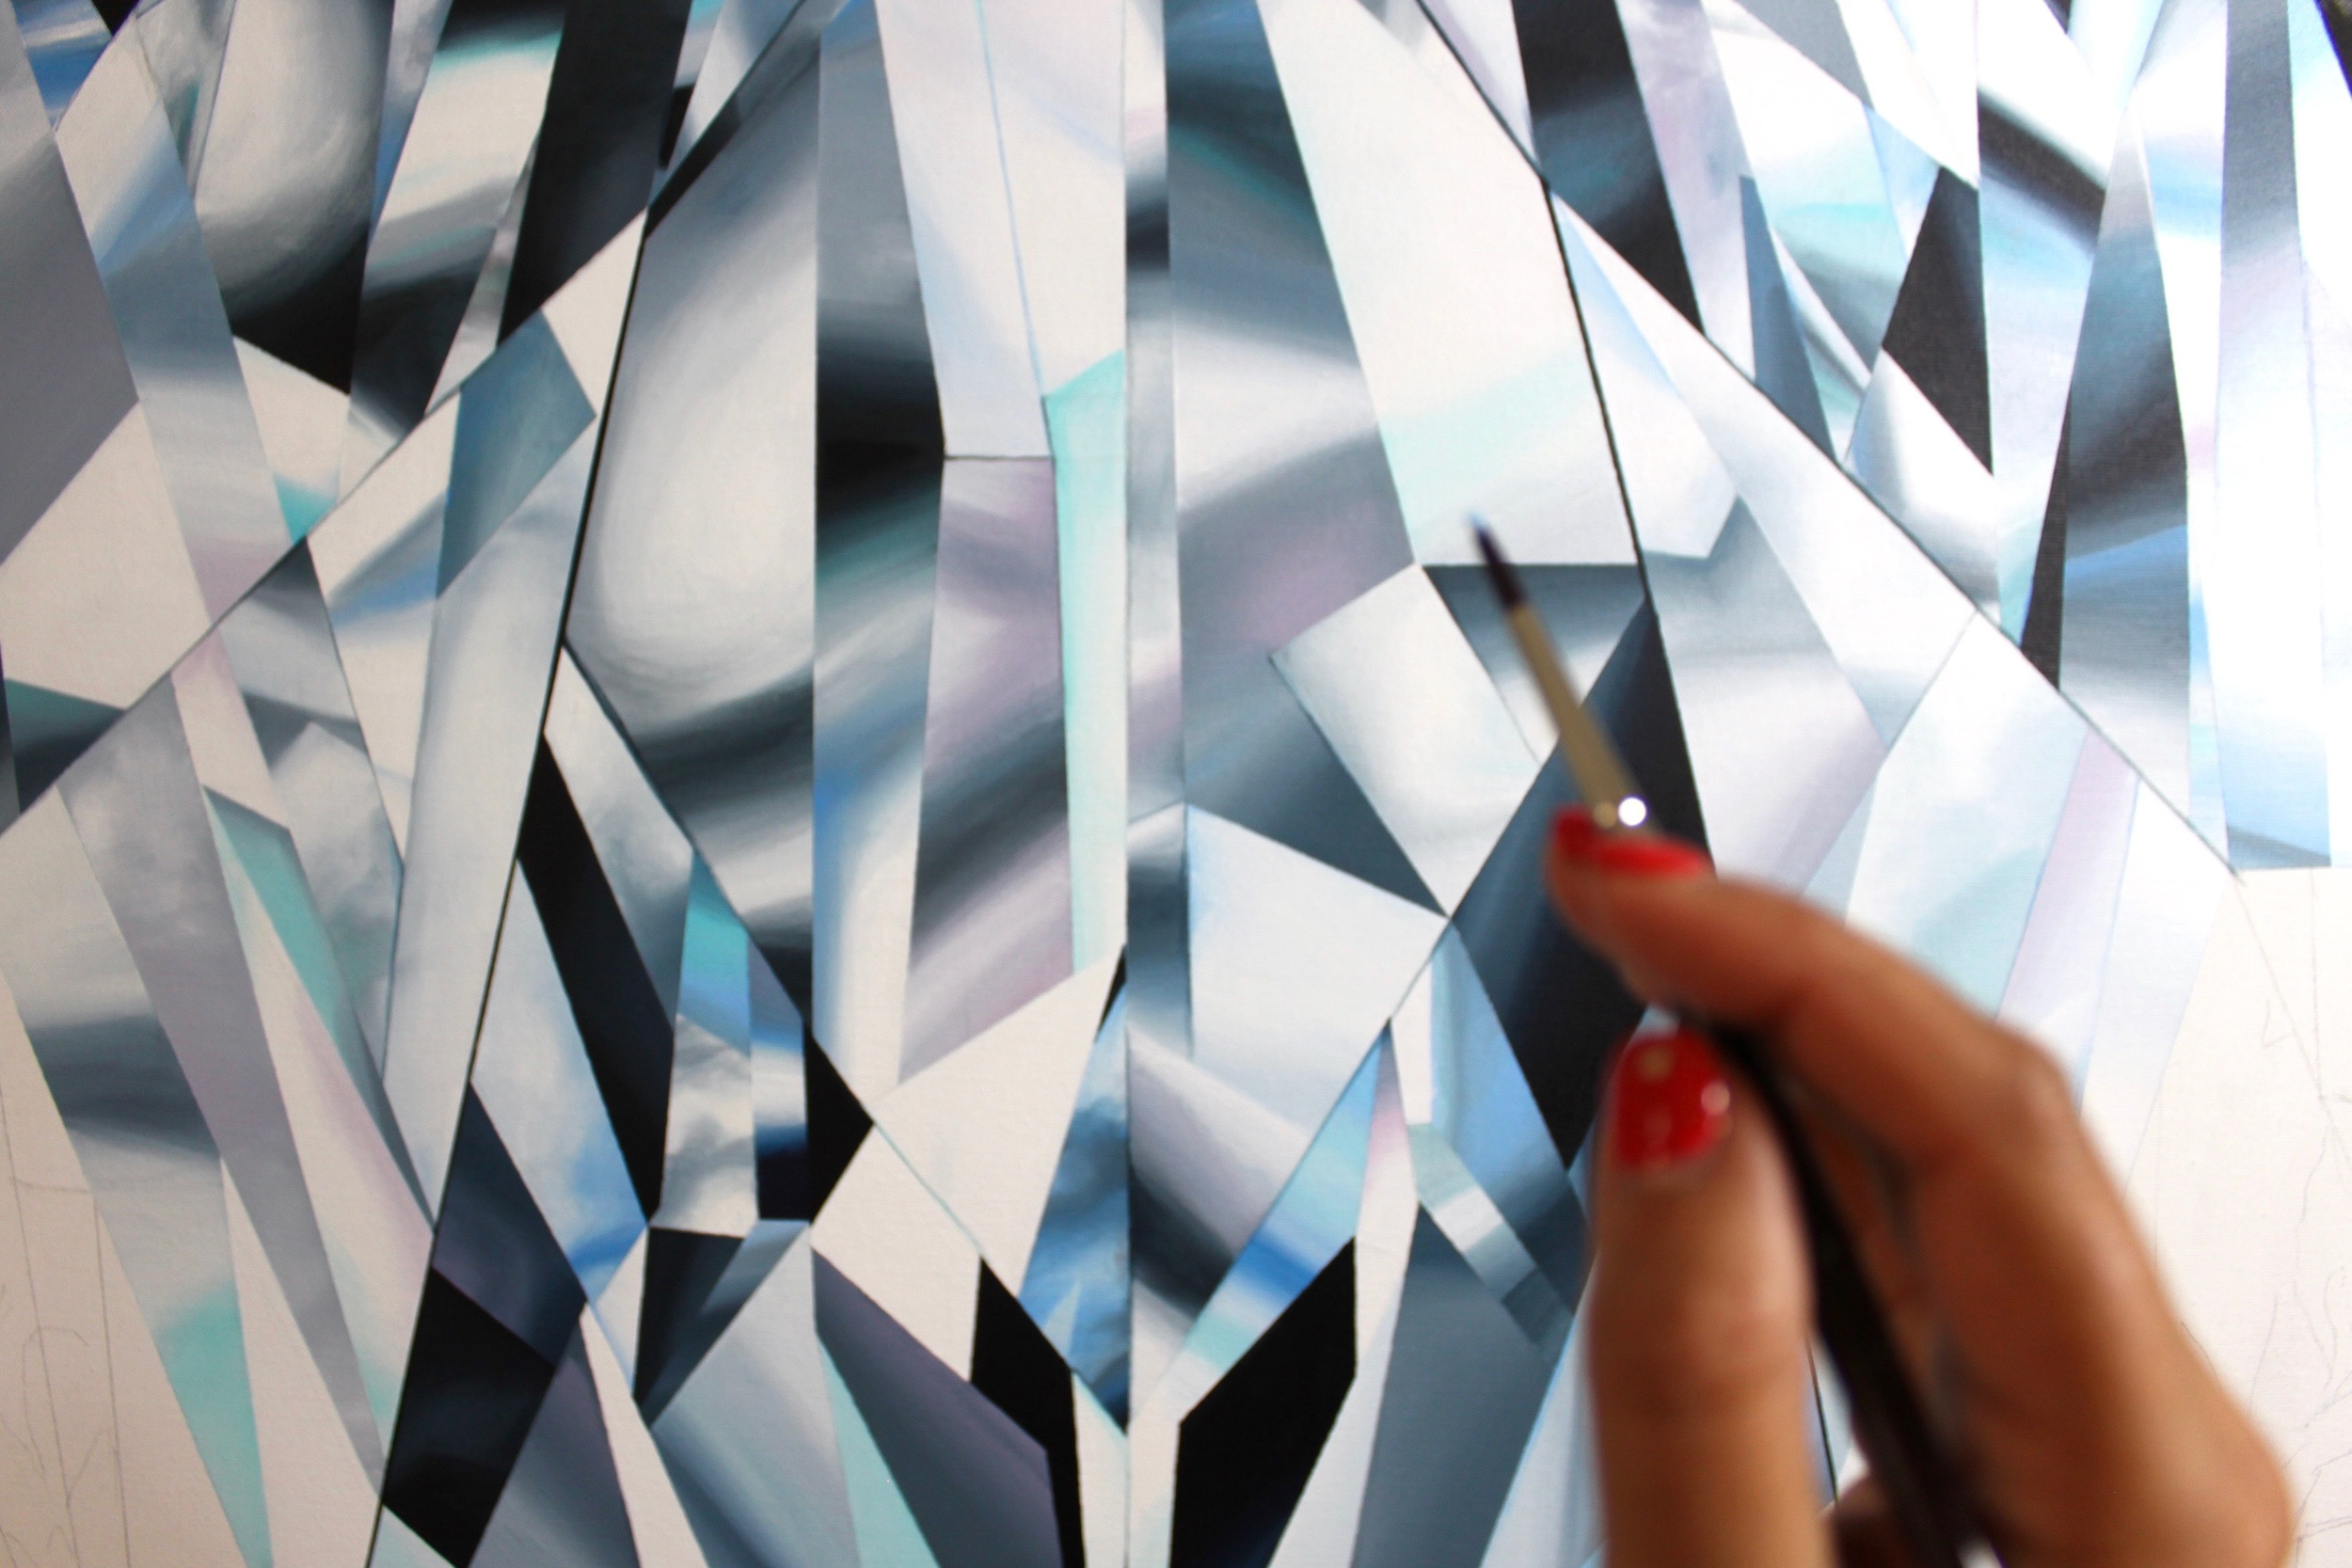 """Detail. Reena Ahluwalia during the making of the """"The Portrait of Perfection"""" - Portrait of a Pear Shaped Diamond. 60""""x 48"""" [5.0 x 4.0 Ft]. Acrylic on Canvas. ©Reena Ahluwalia"""